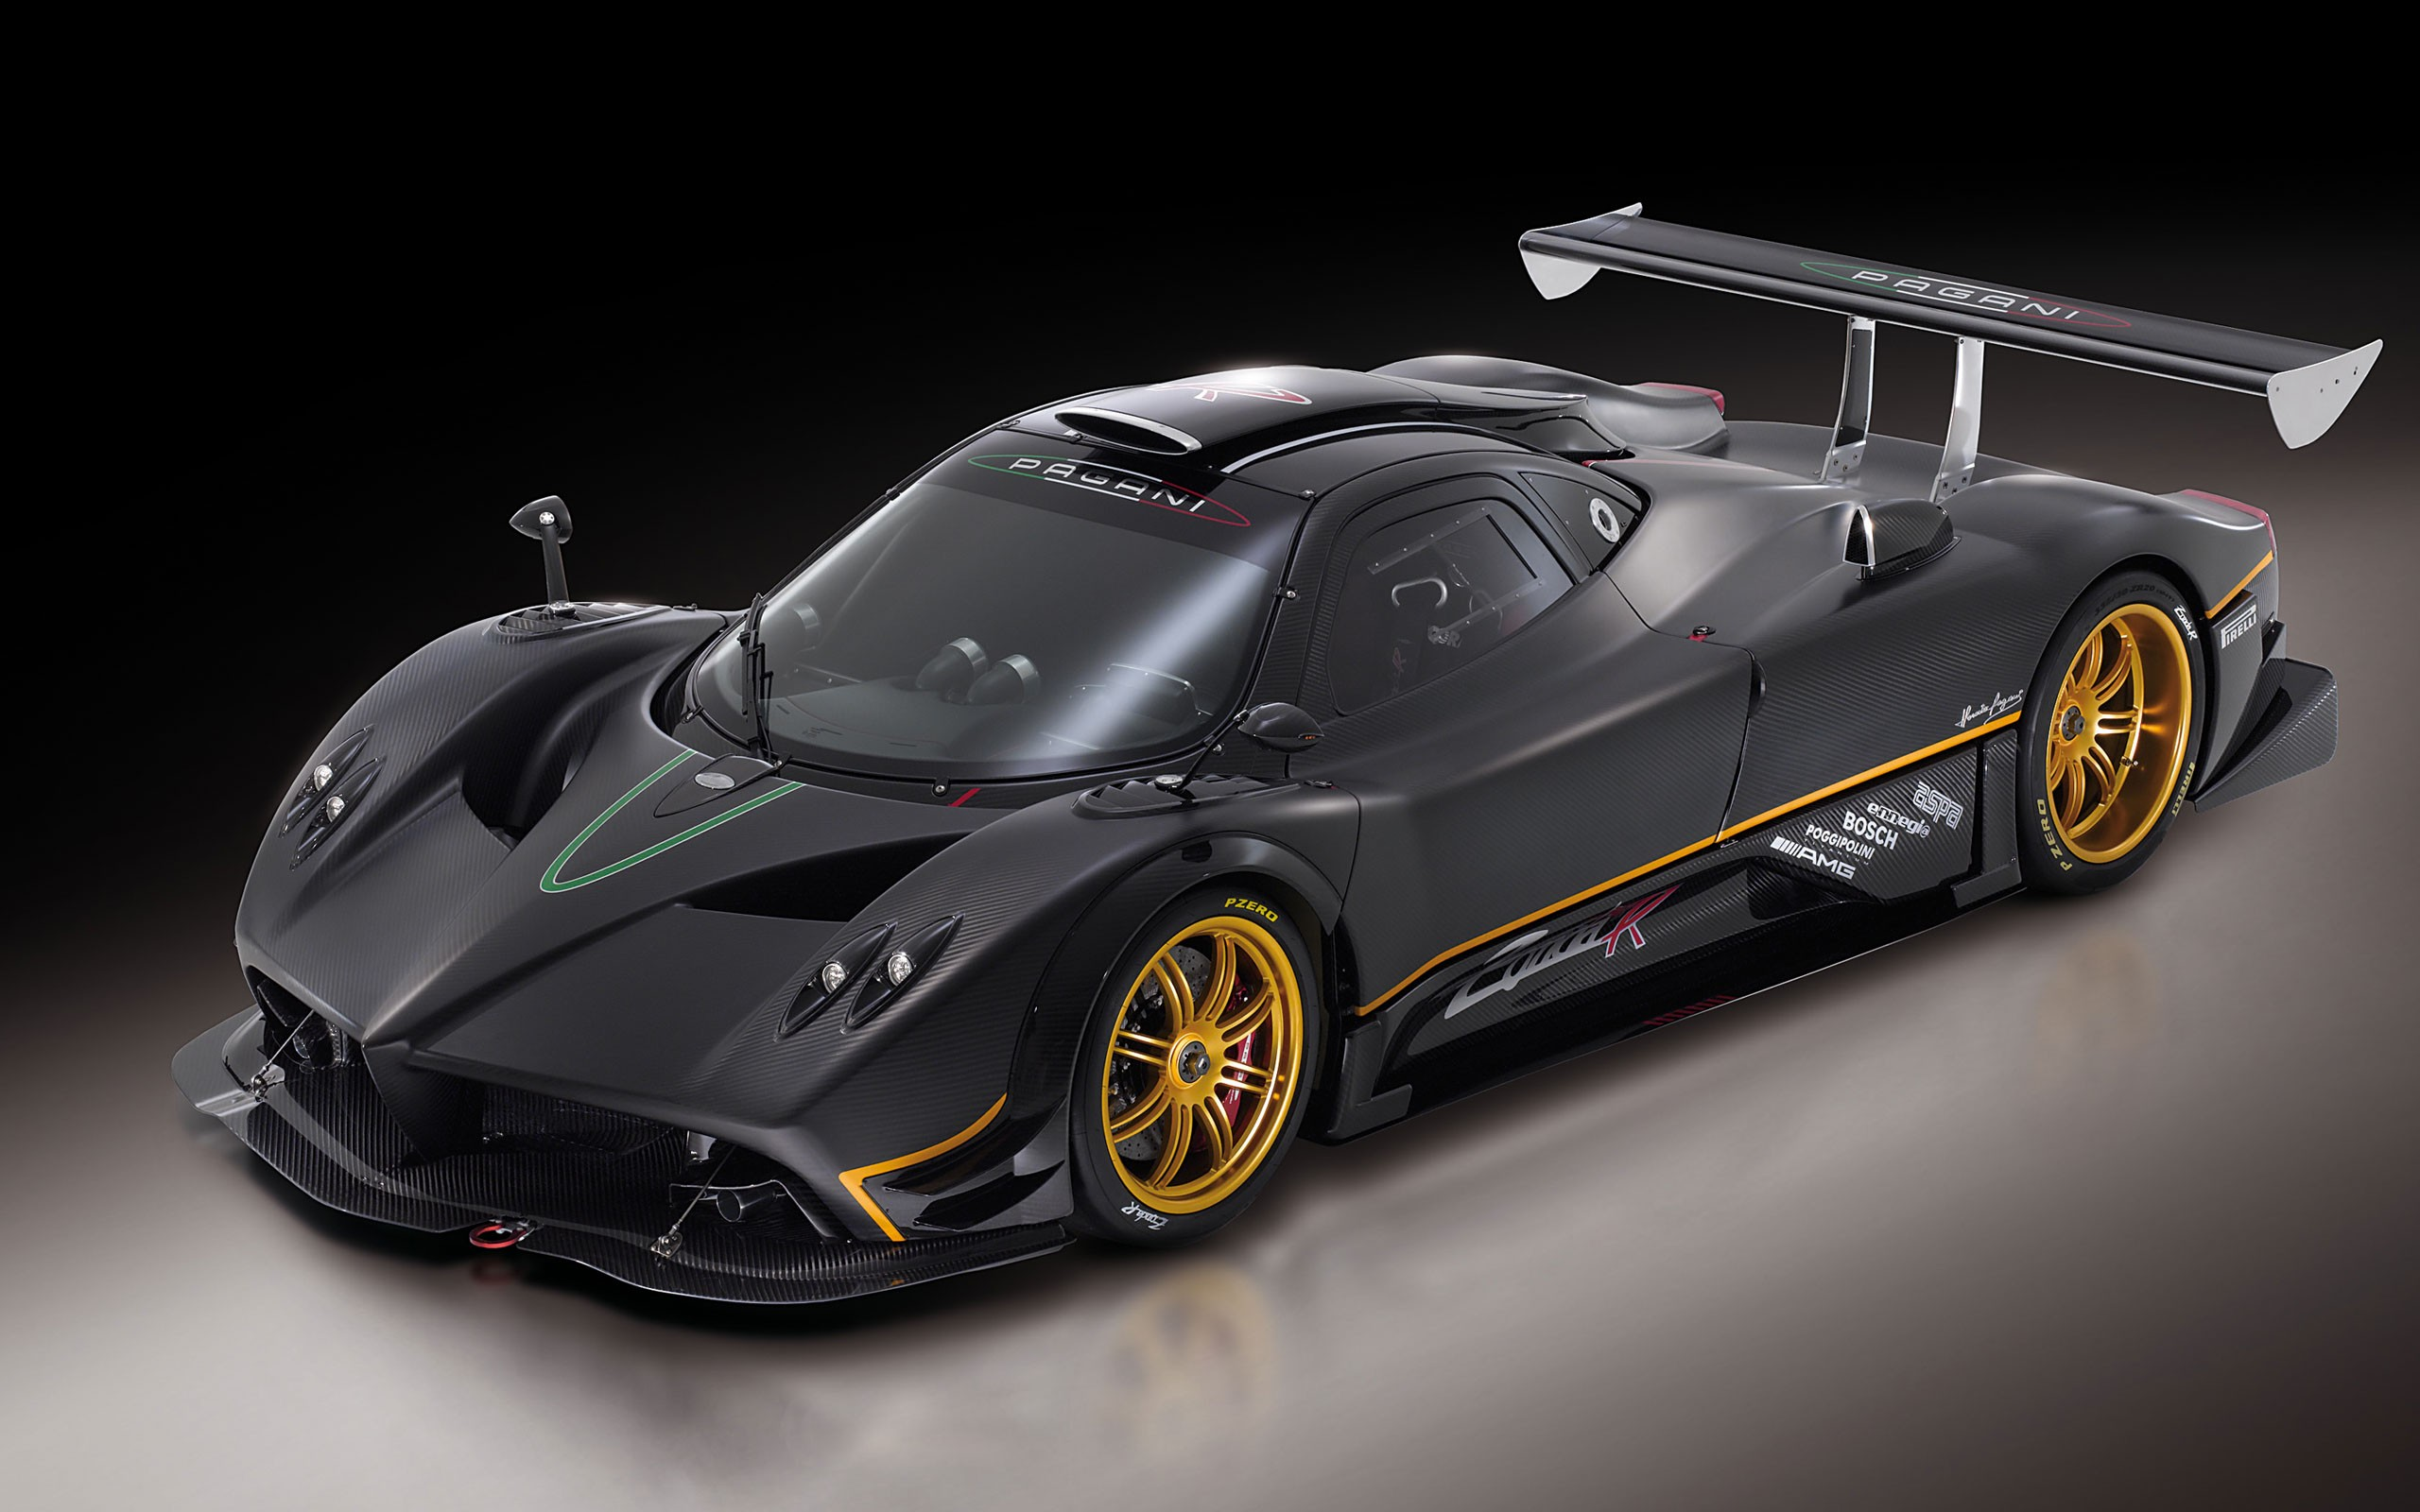 Pagani Zonda High Resolution Wallpaper Desktop Background 2560x1600